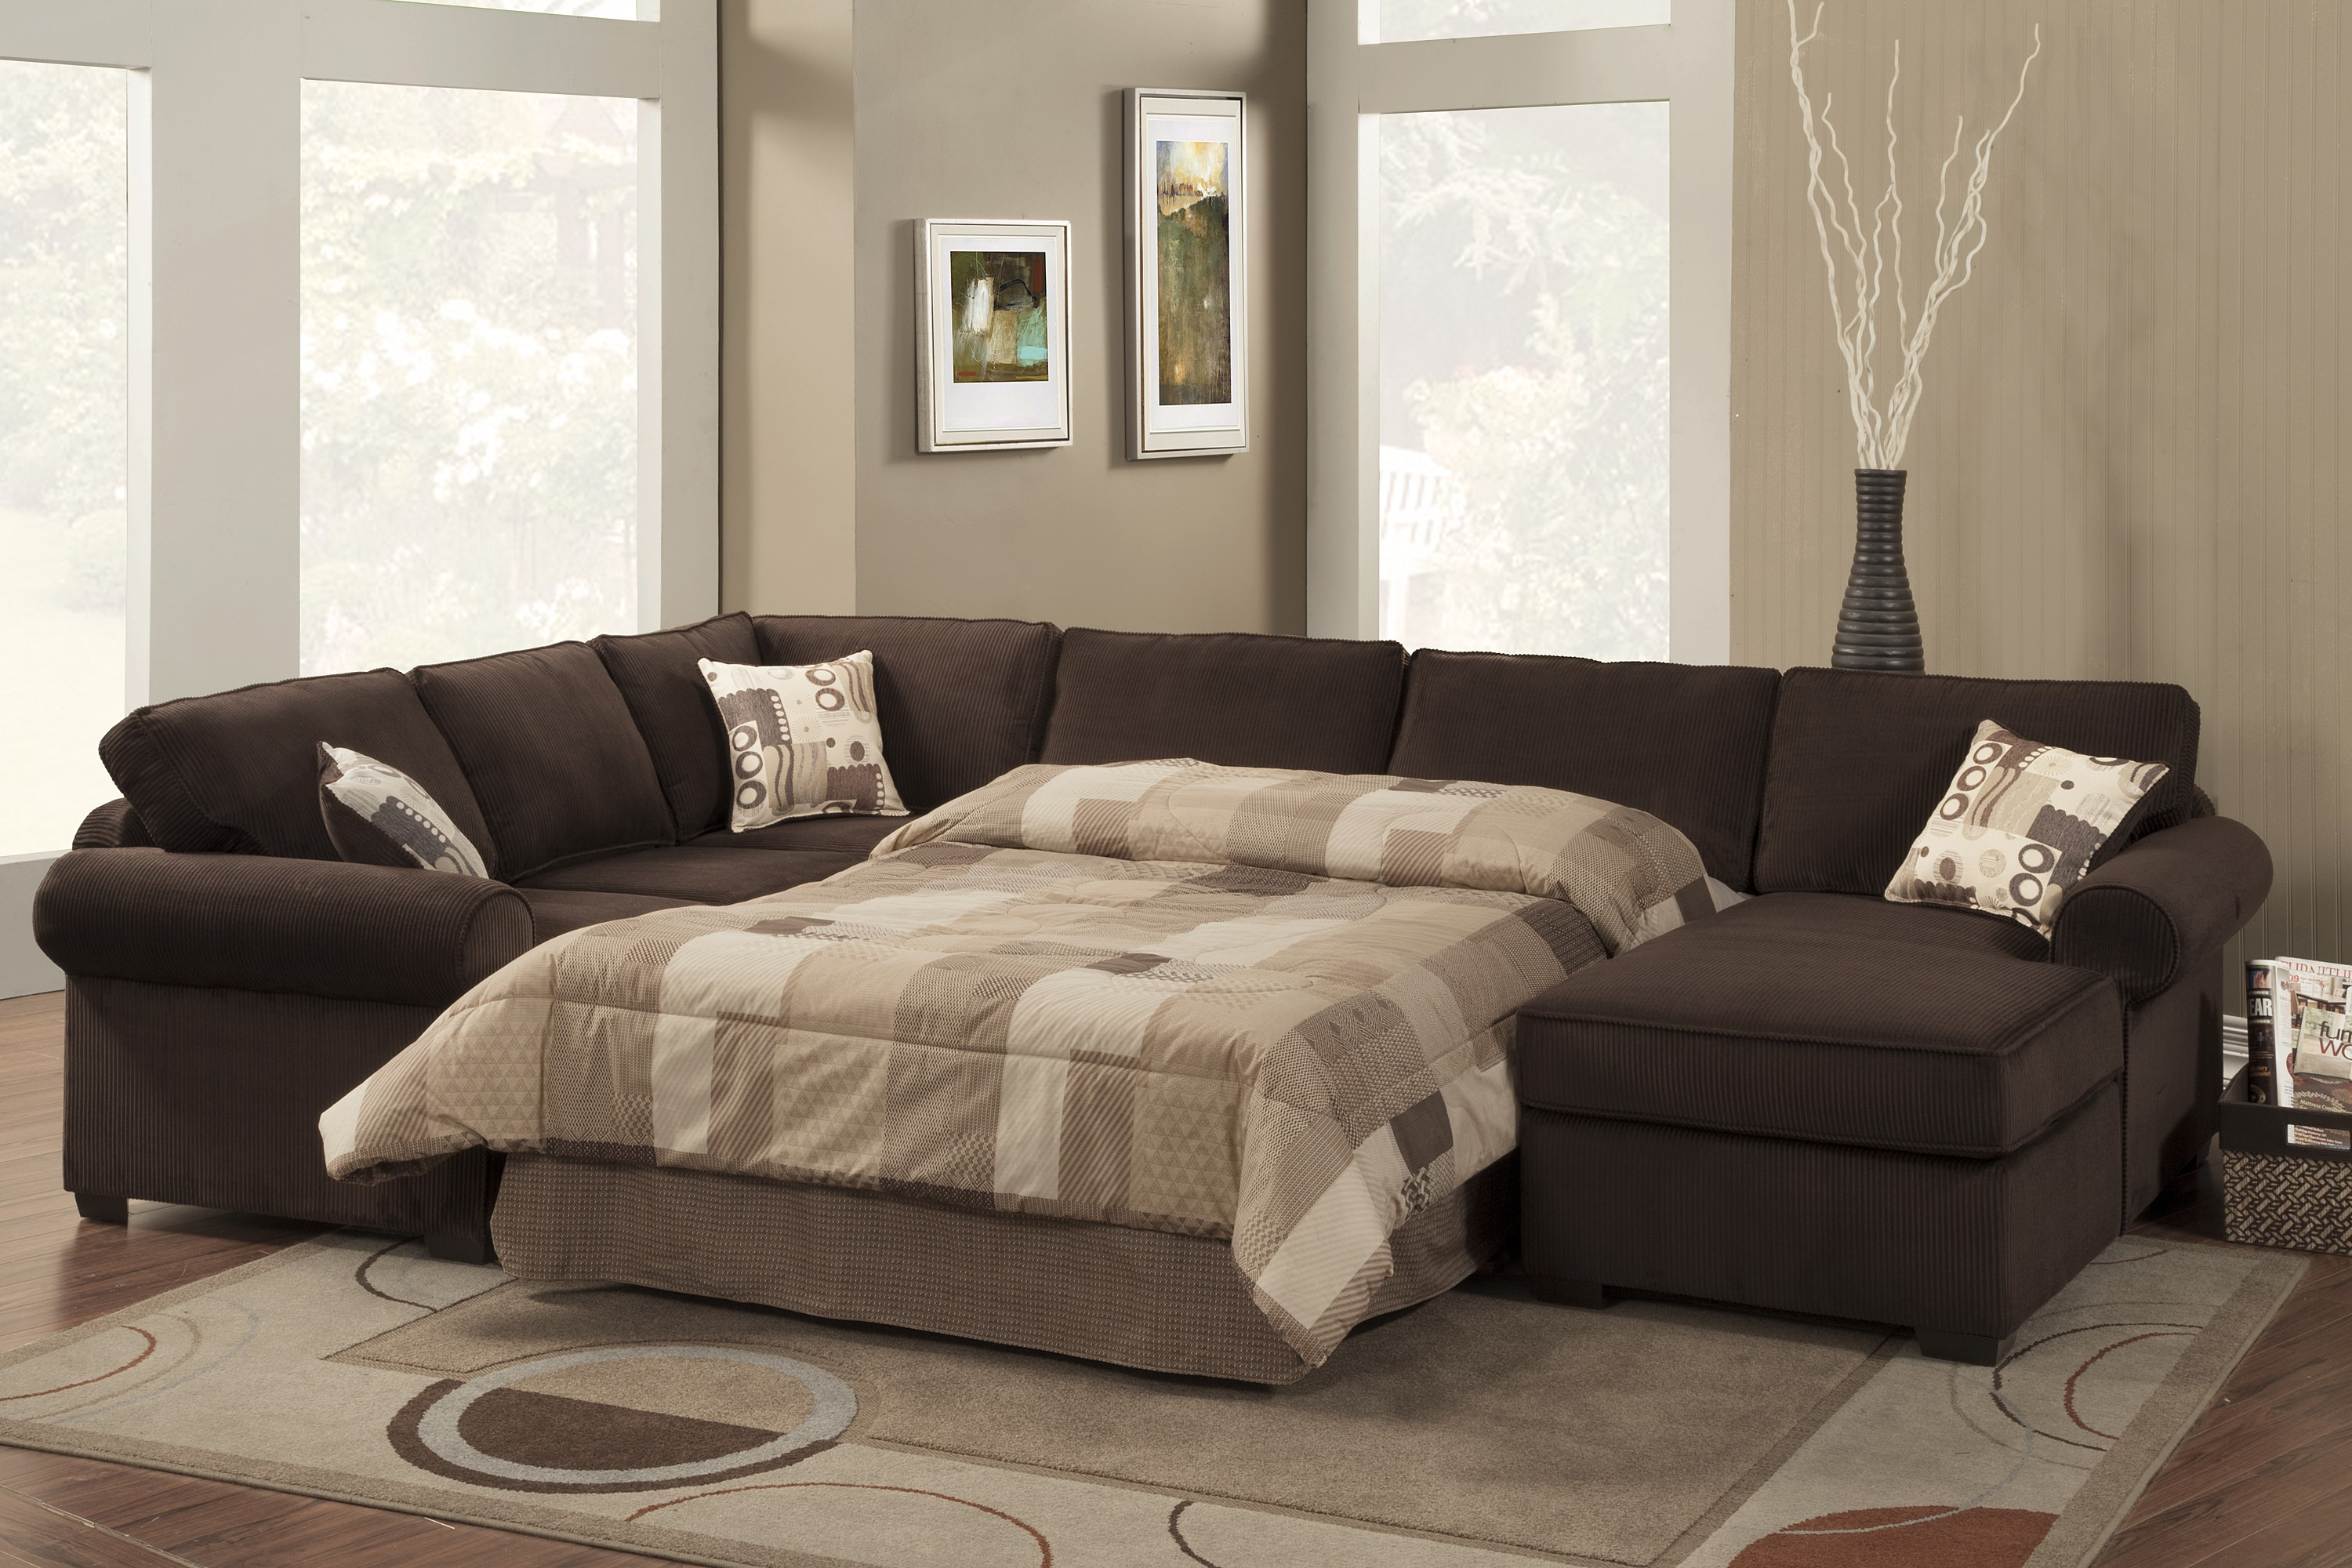 Sectional Sofa Sleepers For Better Sleep Quality And Comfort Homesfeed